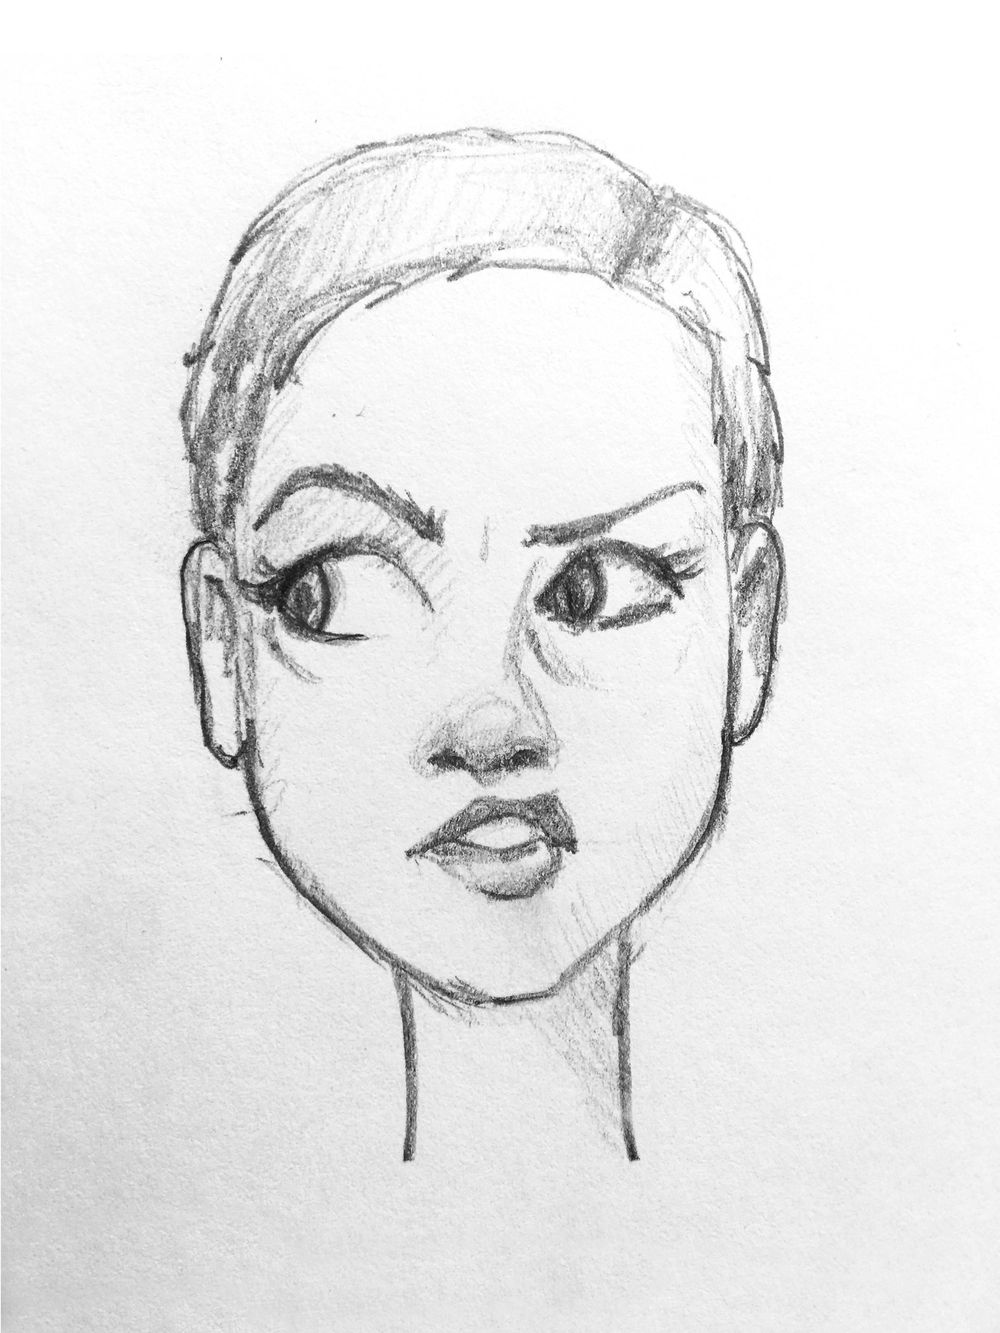 Practicing Facial Expressions - image 4 - student project